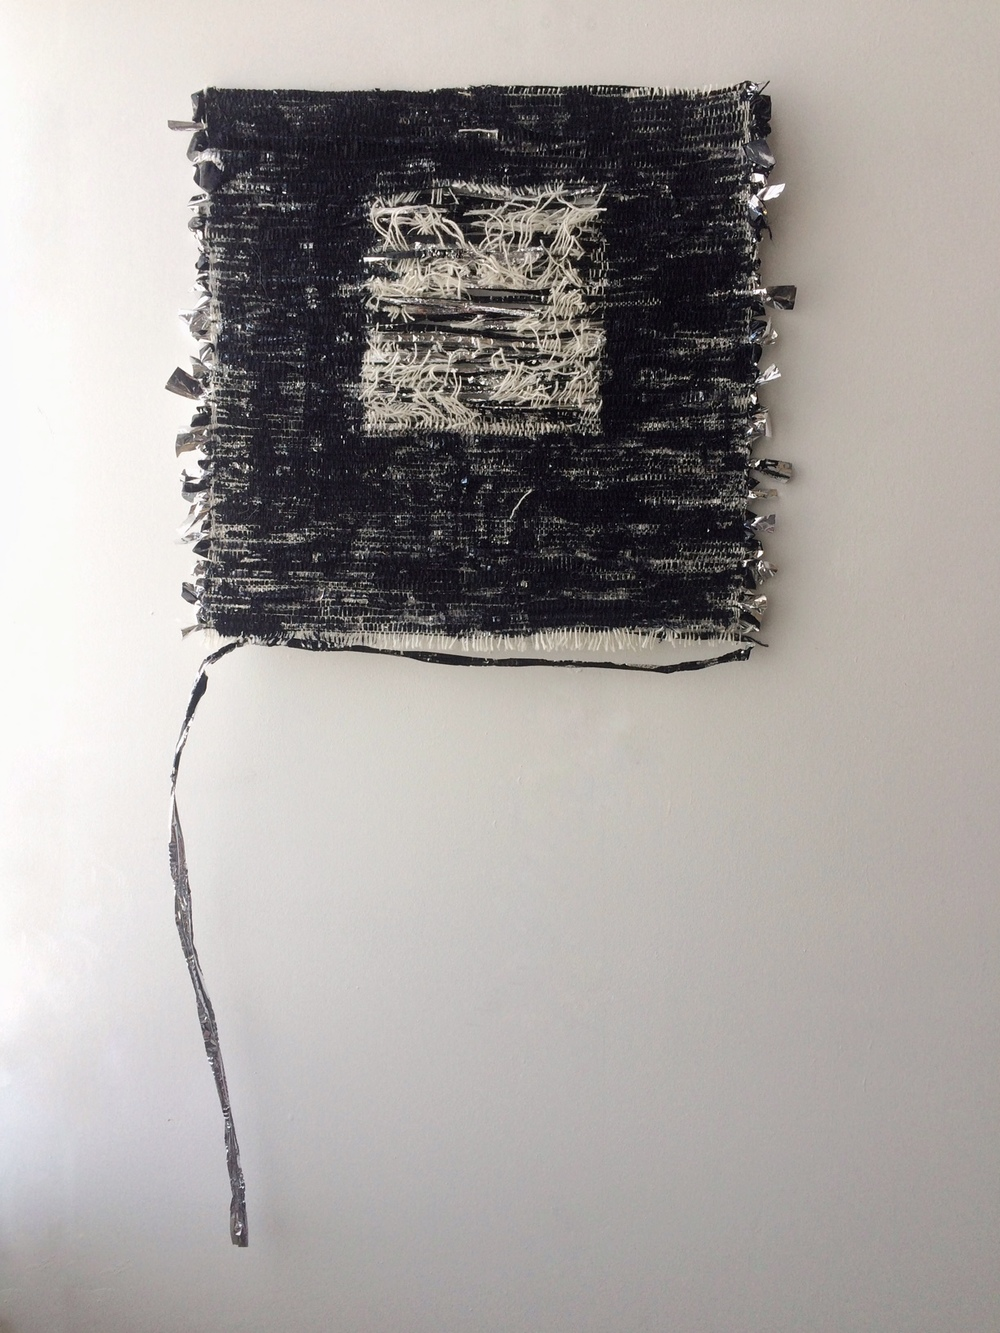 Emergency Blanket I, 2016